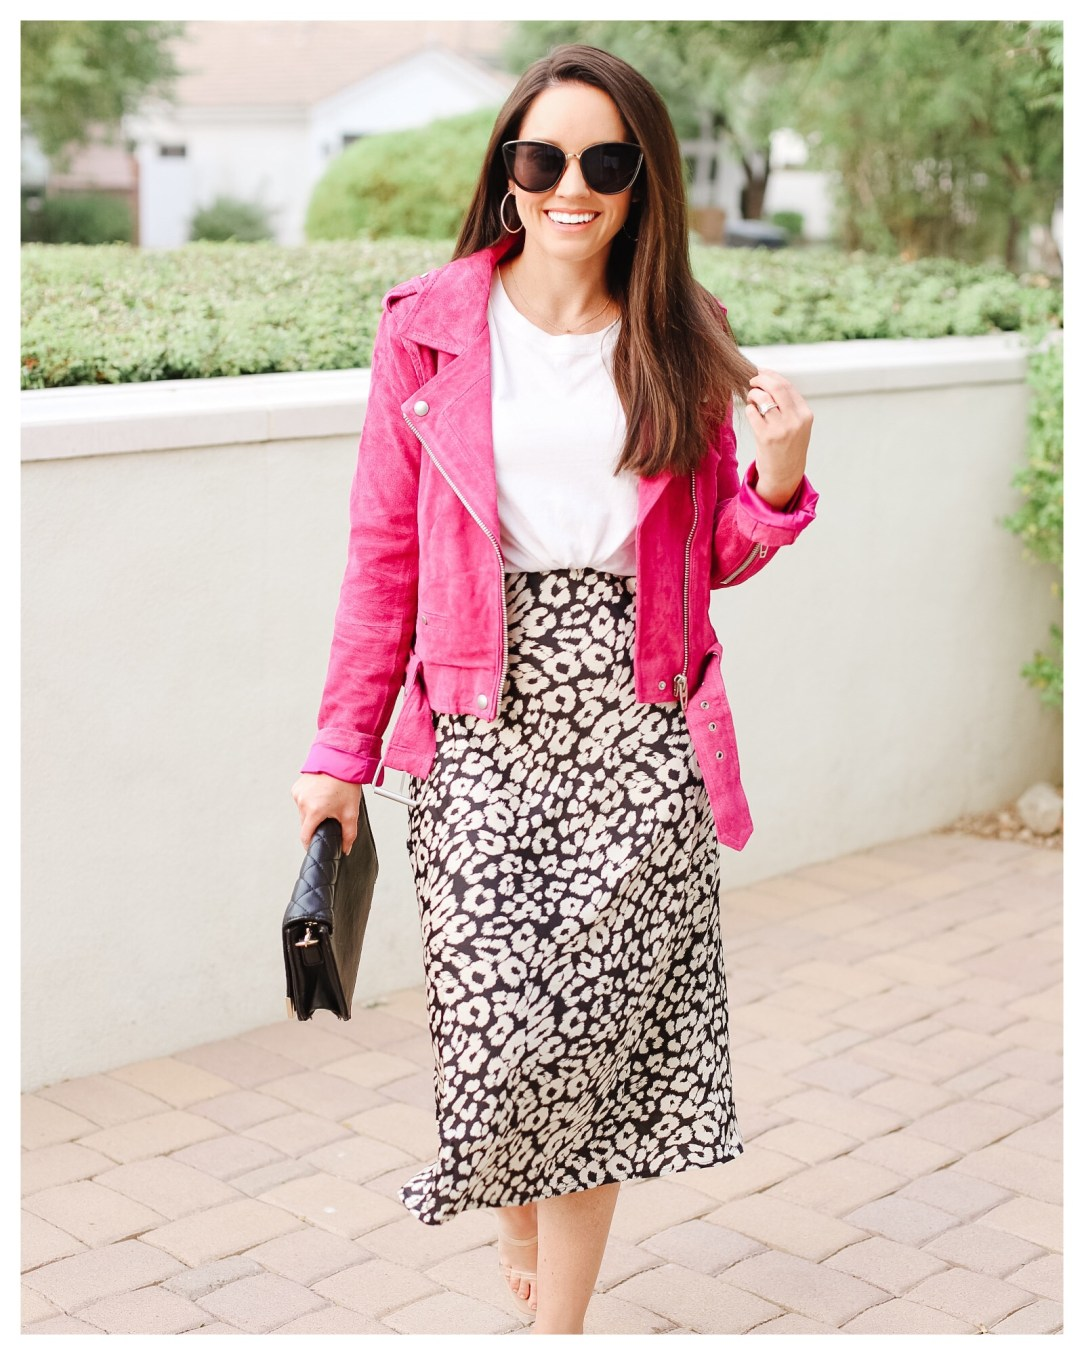 Leopard Slip Skirt on FiveFootFeminine